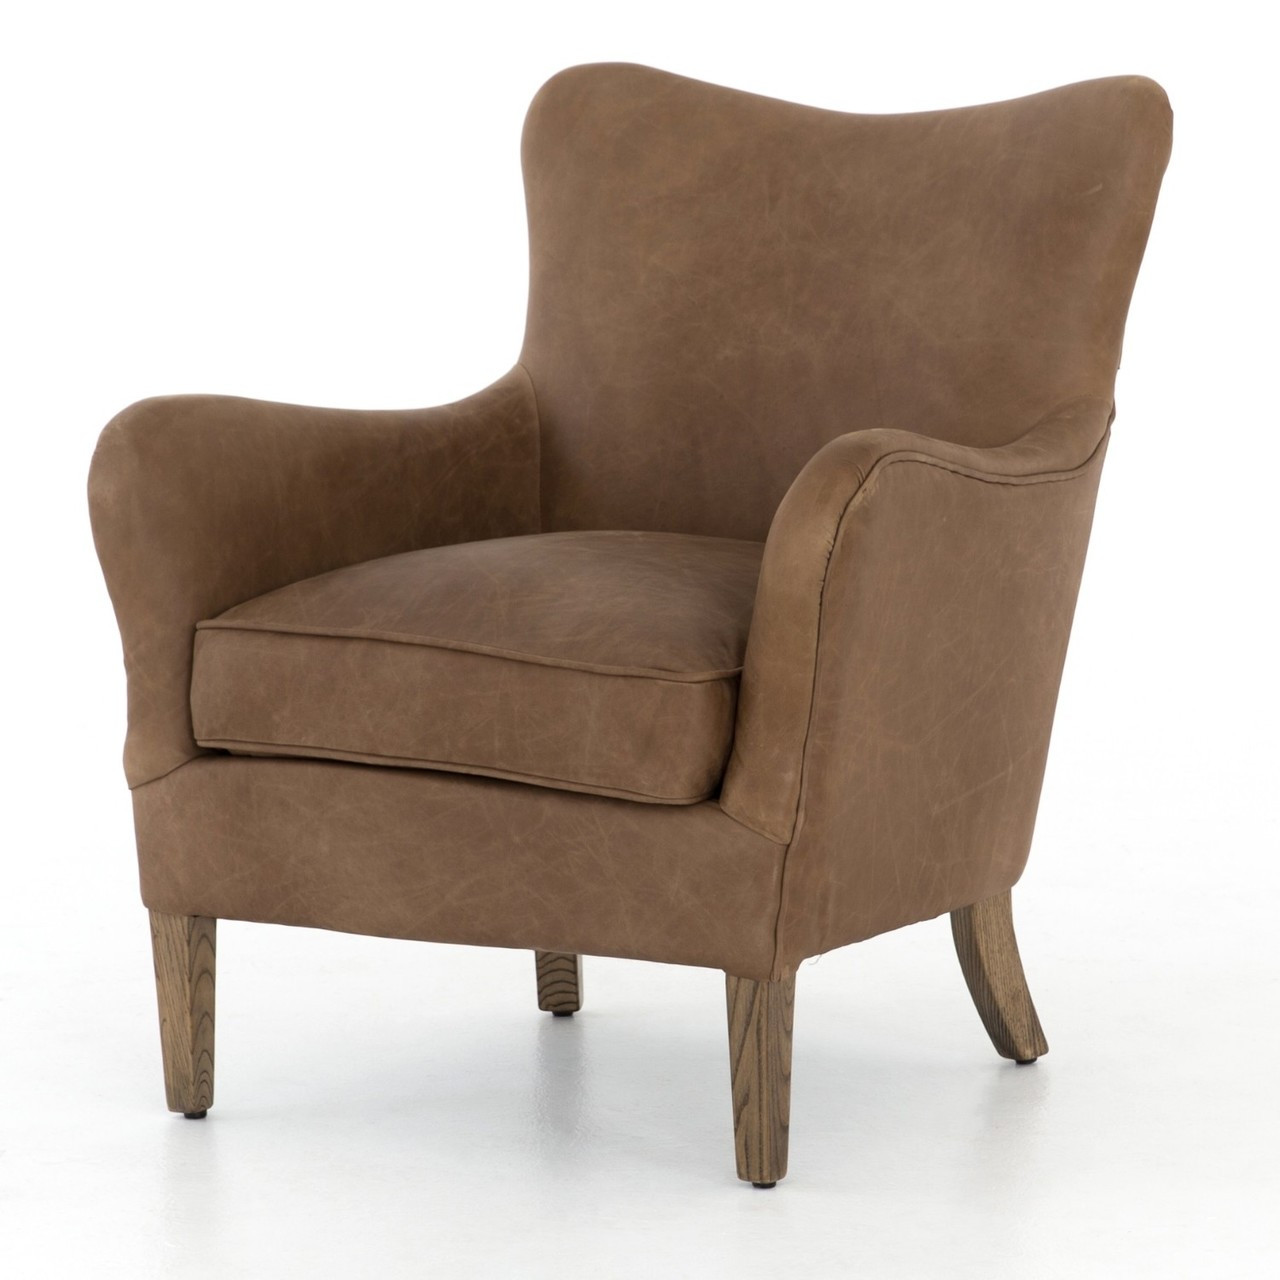 Desmond Wingback Leather Chair